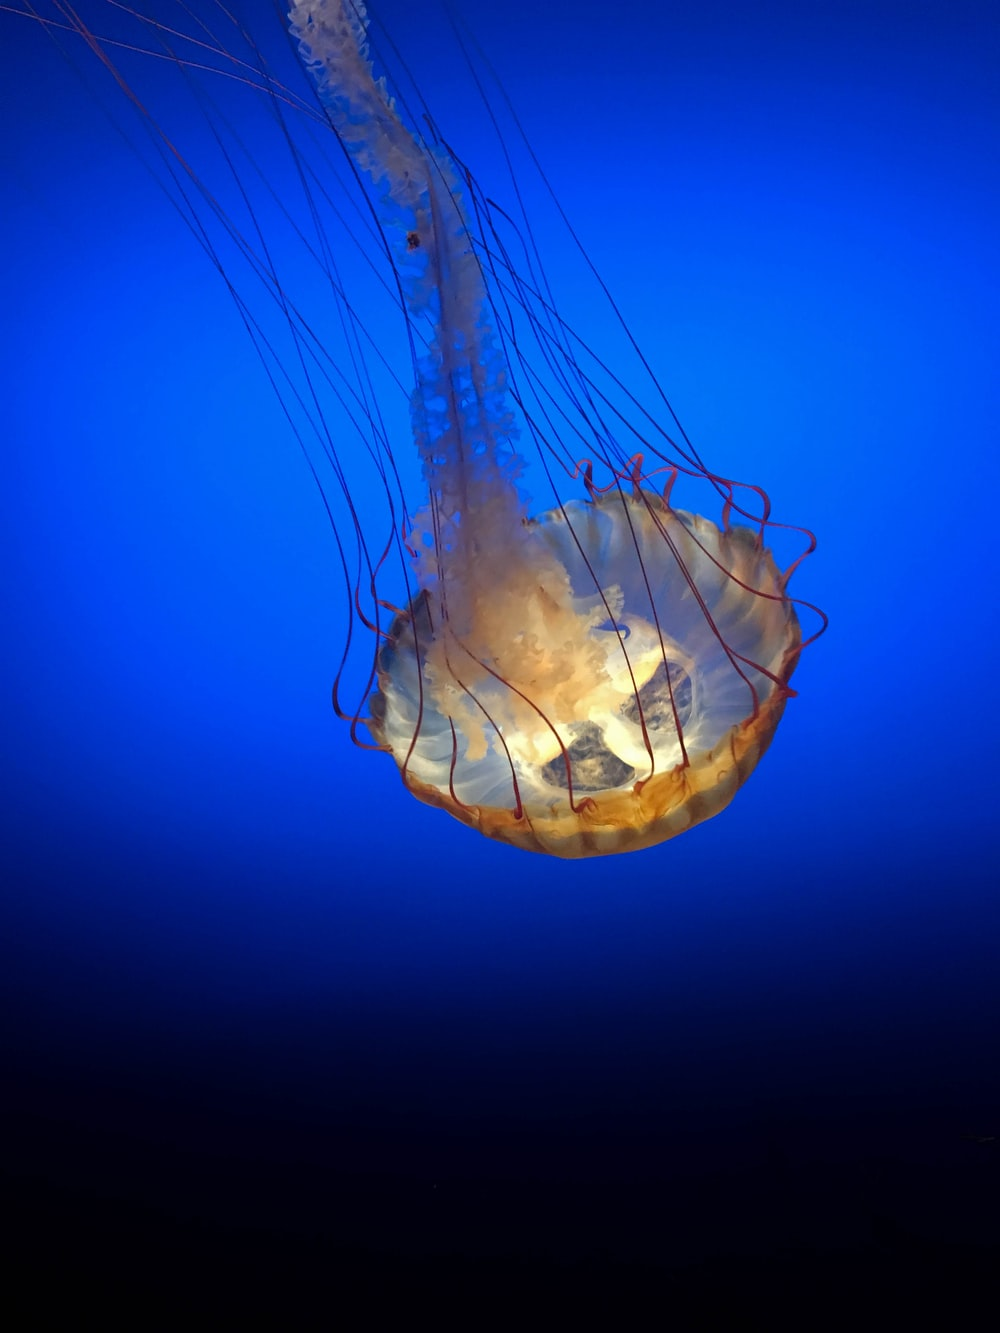 blue and white jellyfish under water